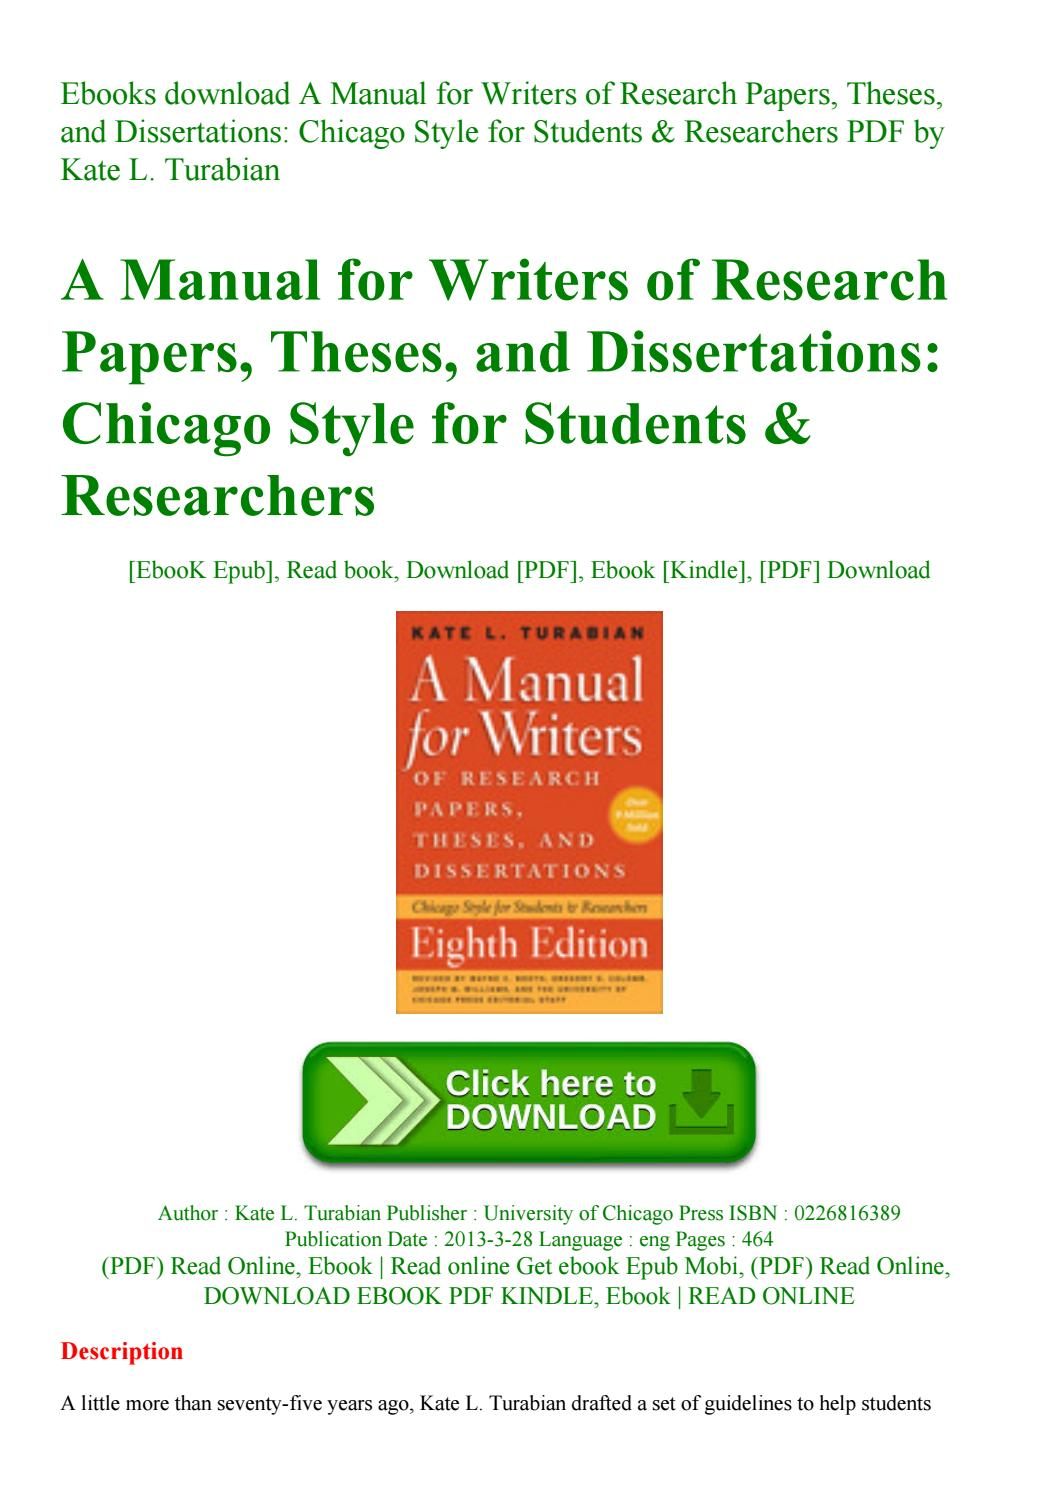 006 Page 1 Research Paper Manual For Writers Of Papers Theses And Dissertations By Kate L Sensational A Turabian L. Full